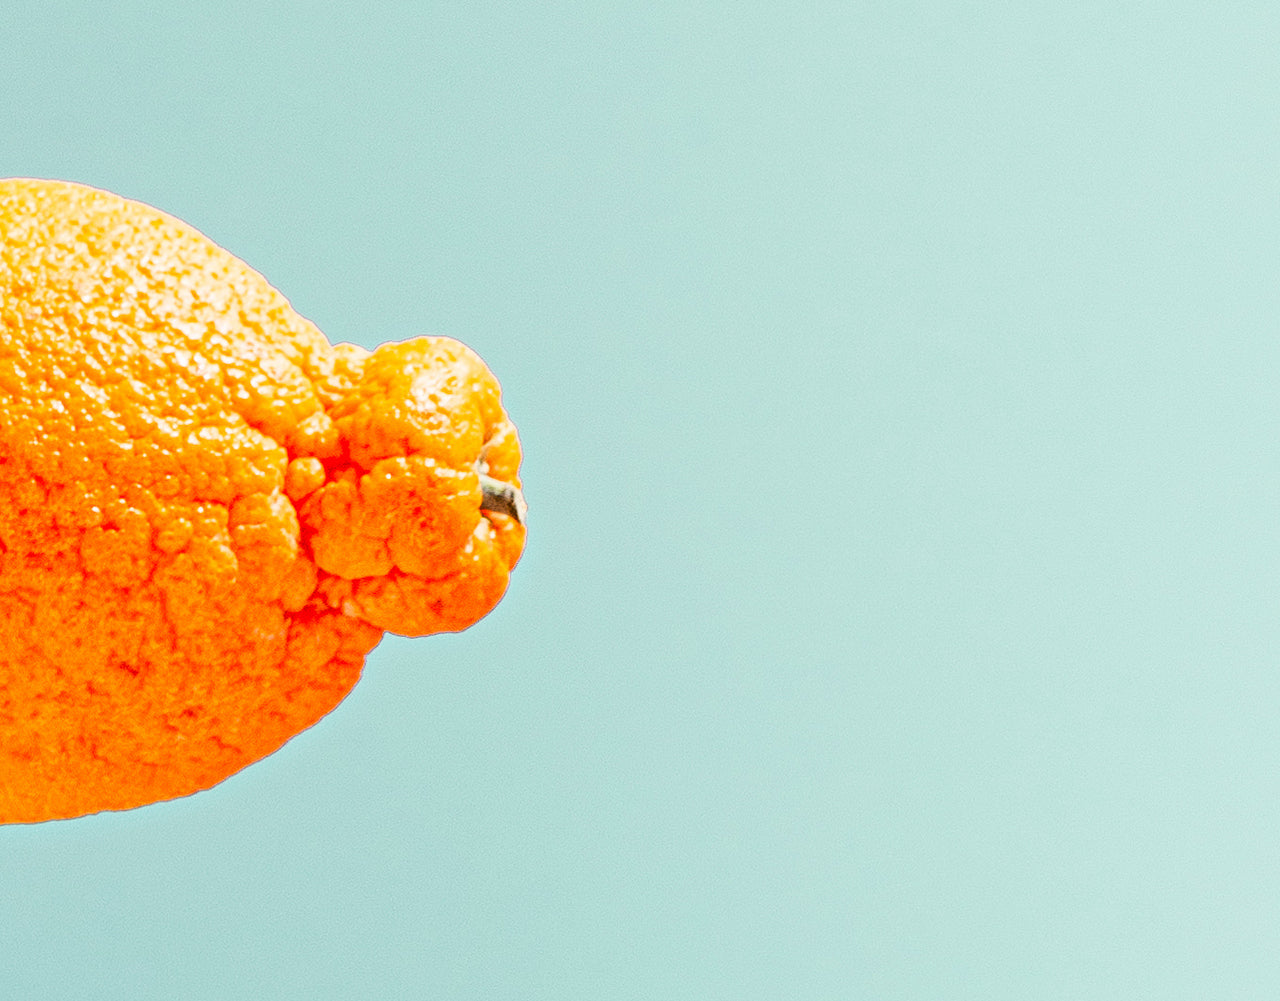 Closeup of a tangerine nub, and the peel's pocky texture, against a cerulean blue background.